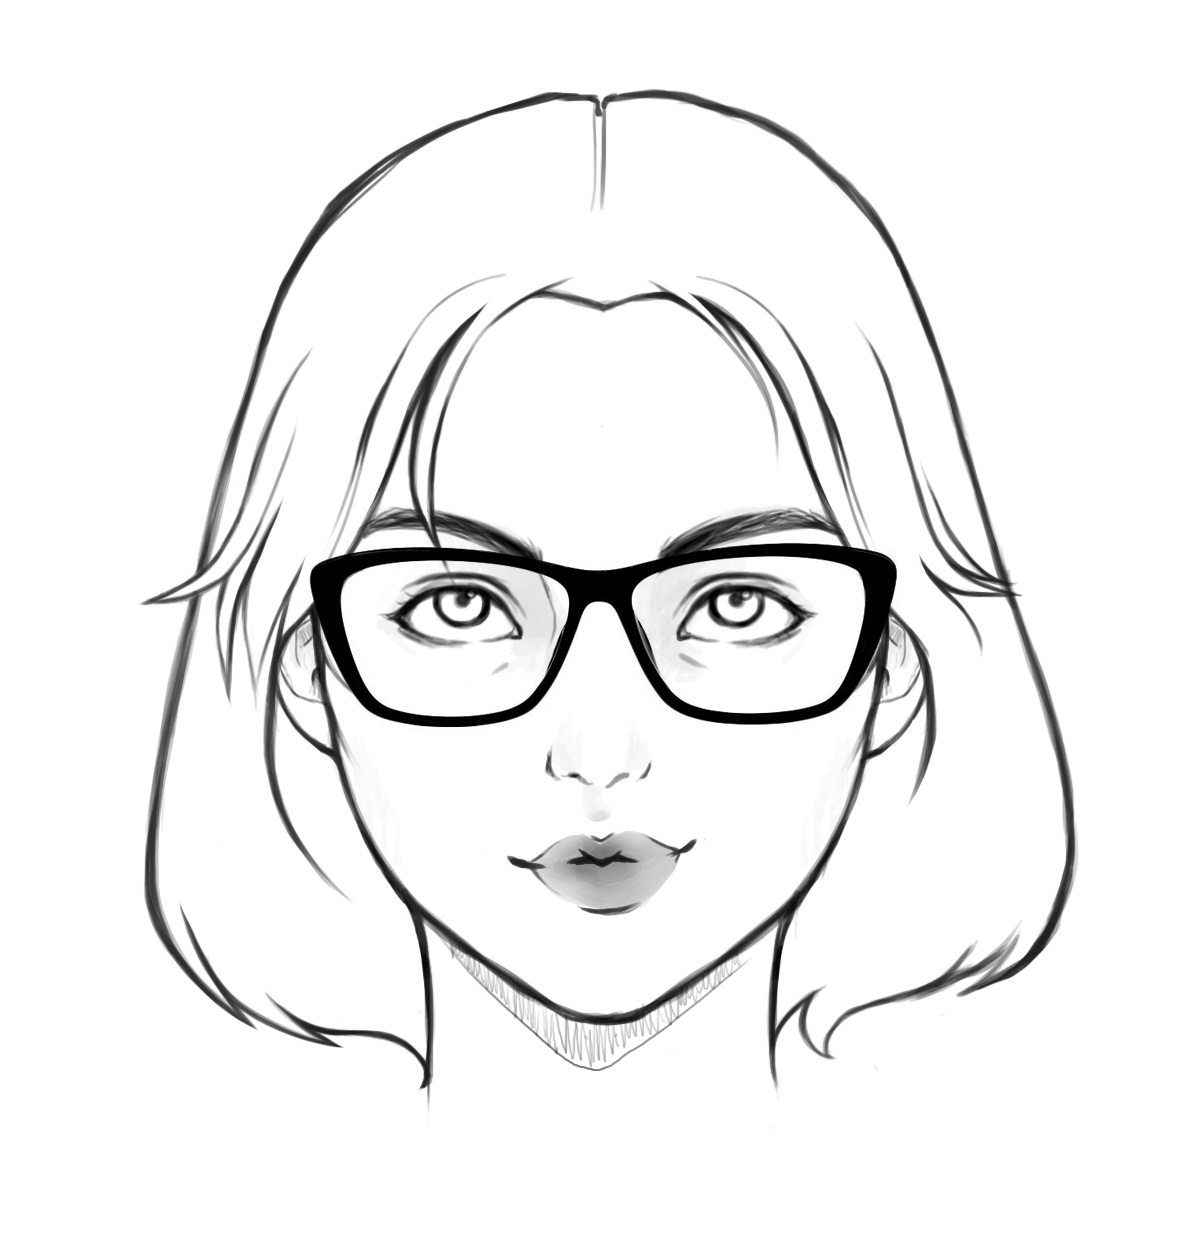 1204x1234 Glass Frames According To Your Face Shape Spectoworld